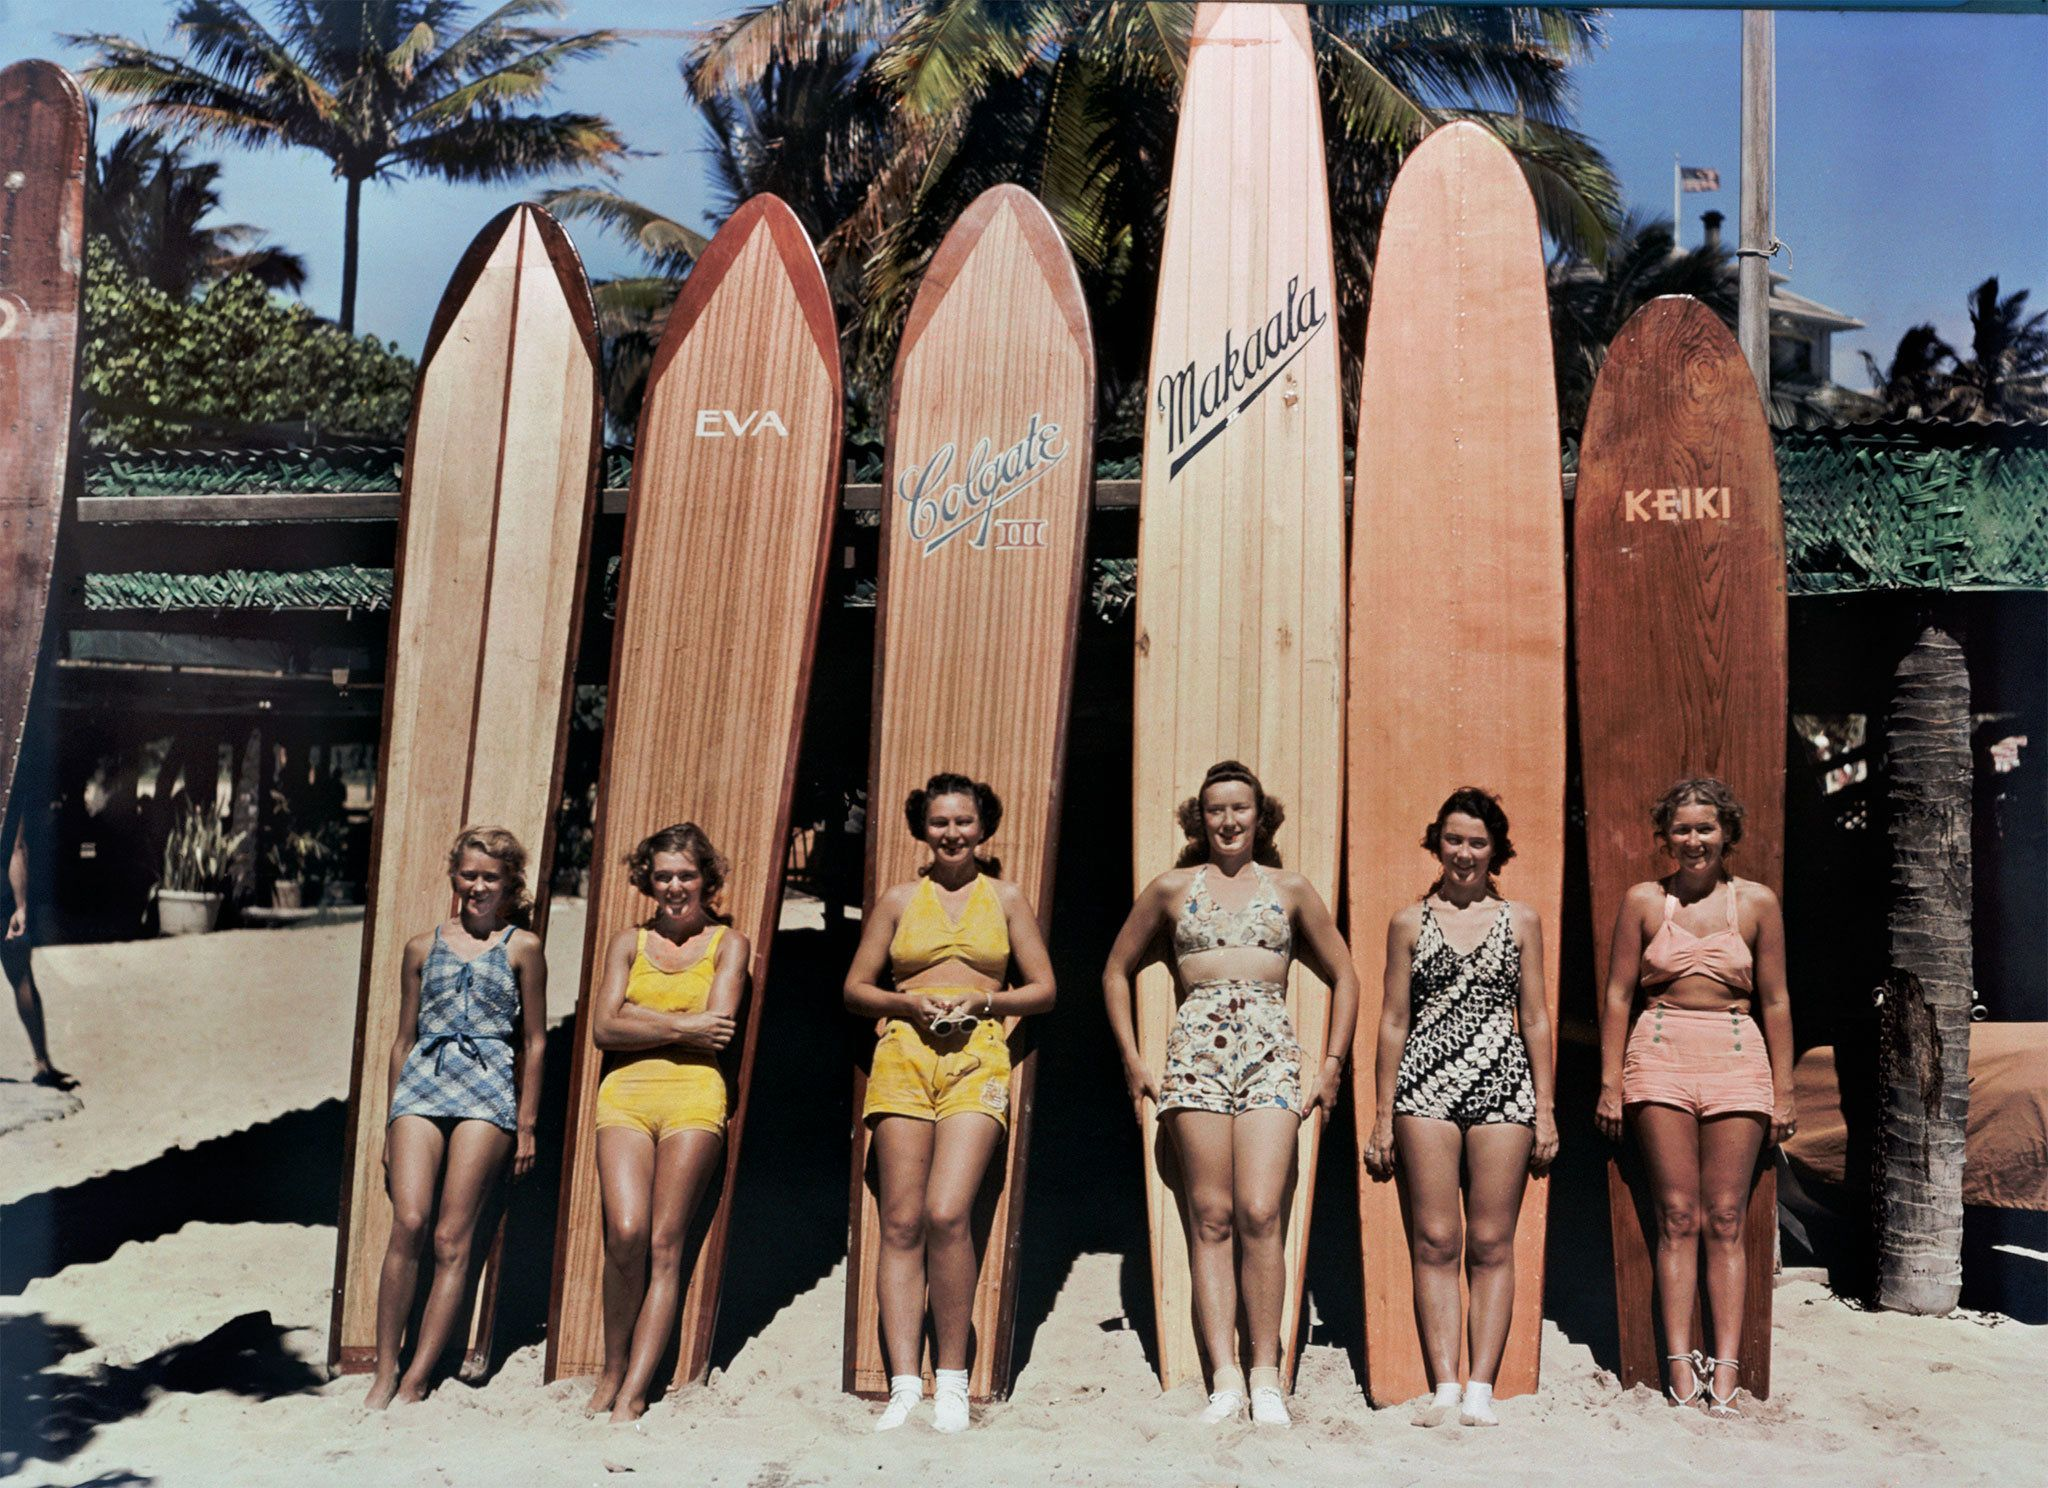 Women pose in front of surfboards on Waikiki Beach in Honolulu, Hawaii, in a photo from a 1938 issue...